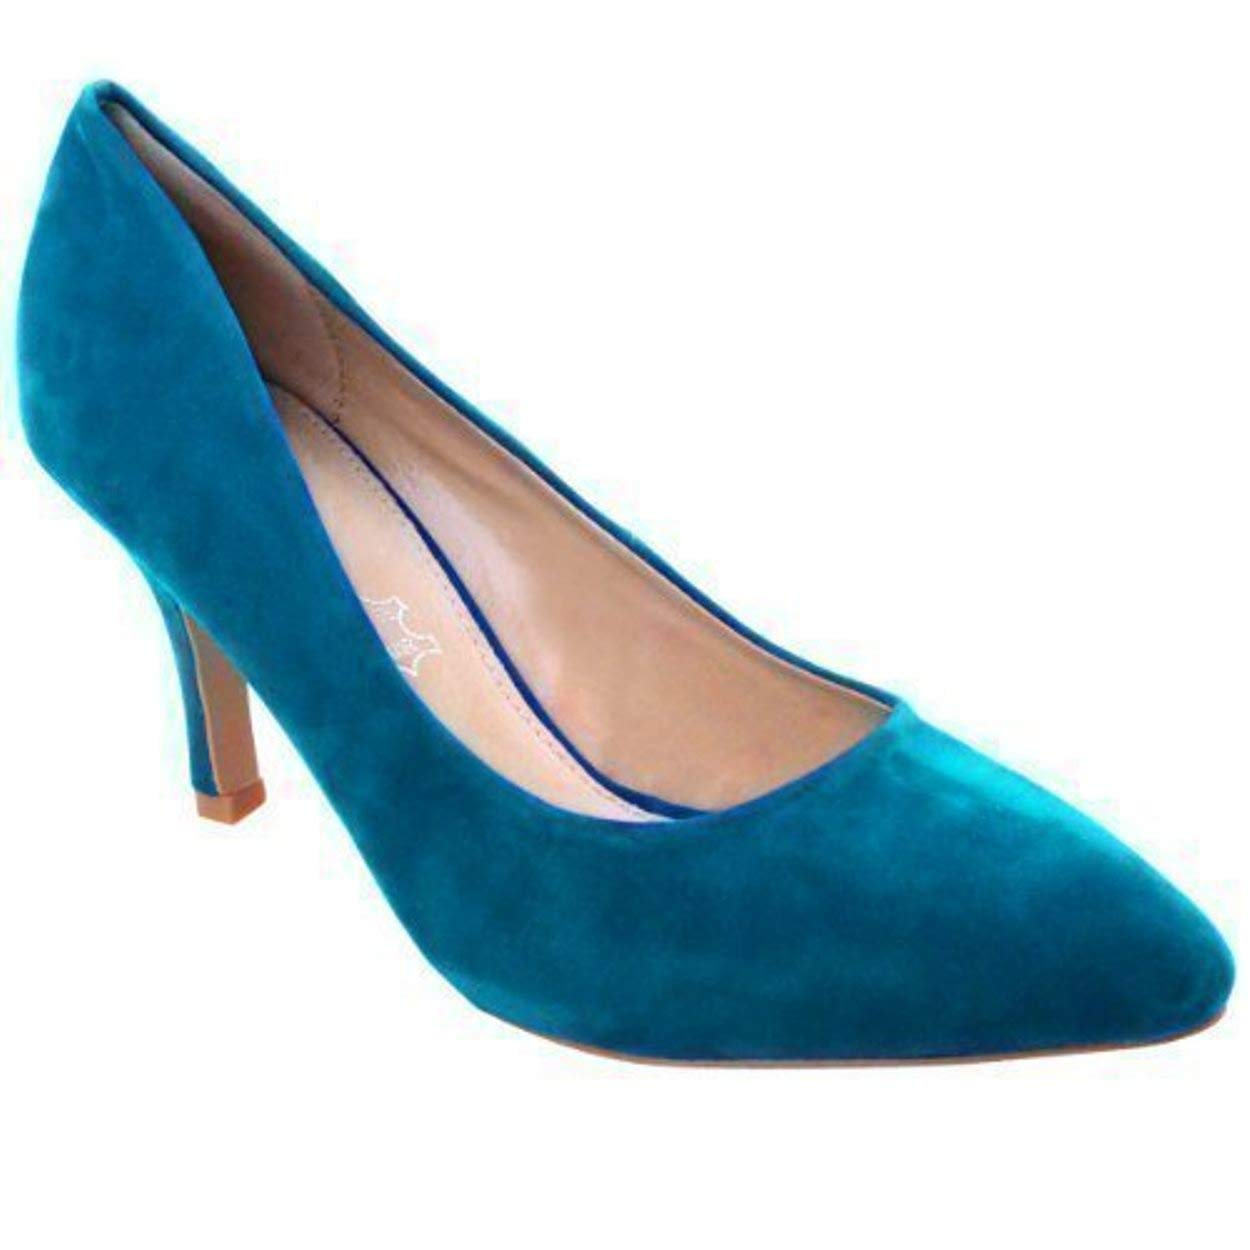 aaf277faa76c WOMENS LADIES LOW MID HIGH KITTEN HEEL PUMPS POINTED TOE WORK COURT SHOES  SIZE  Amazon.co.uk  Shoes   Bags